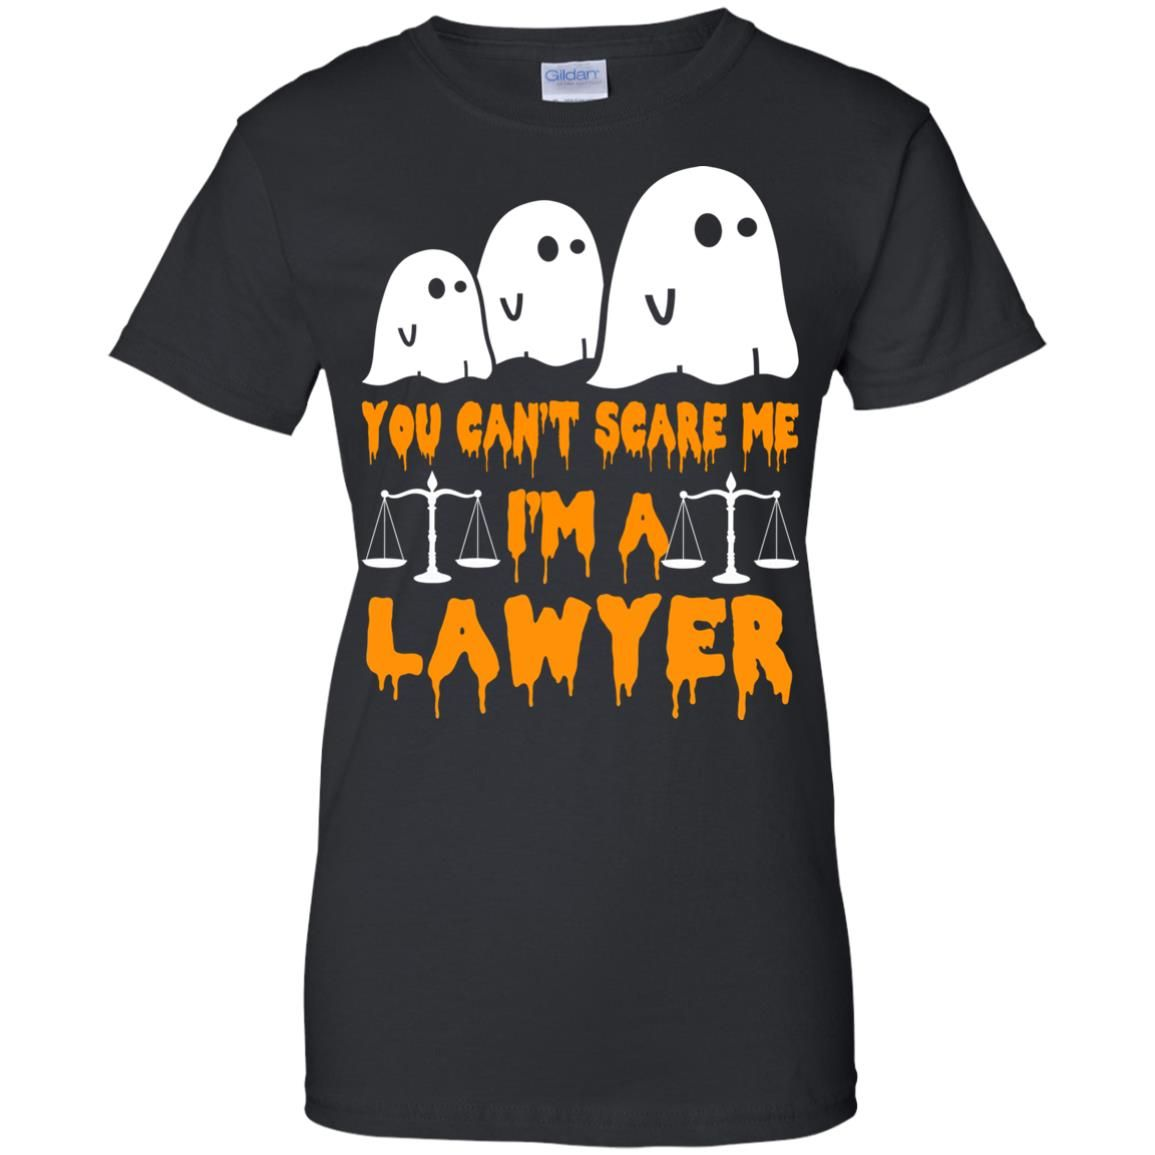 image 642 - You can't scare me I'm a Lawyer shirt, hoodie, tank